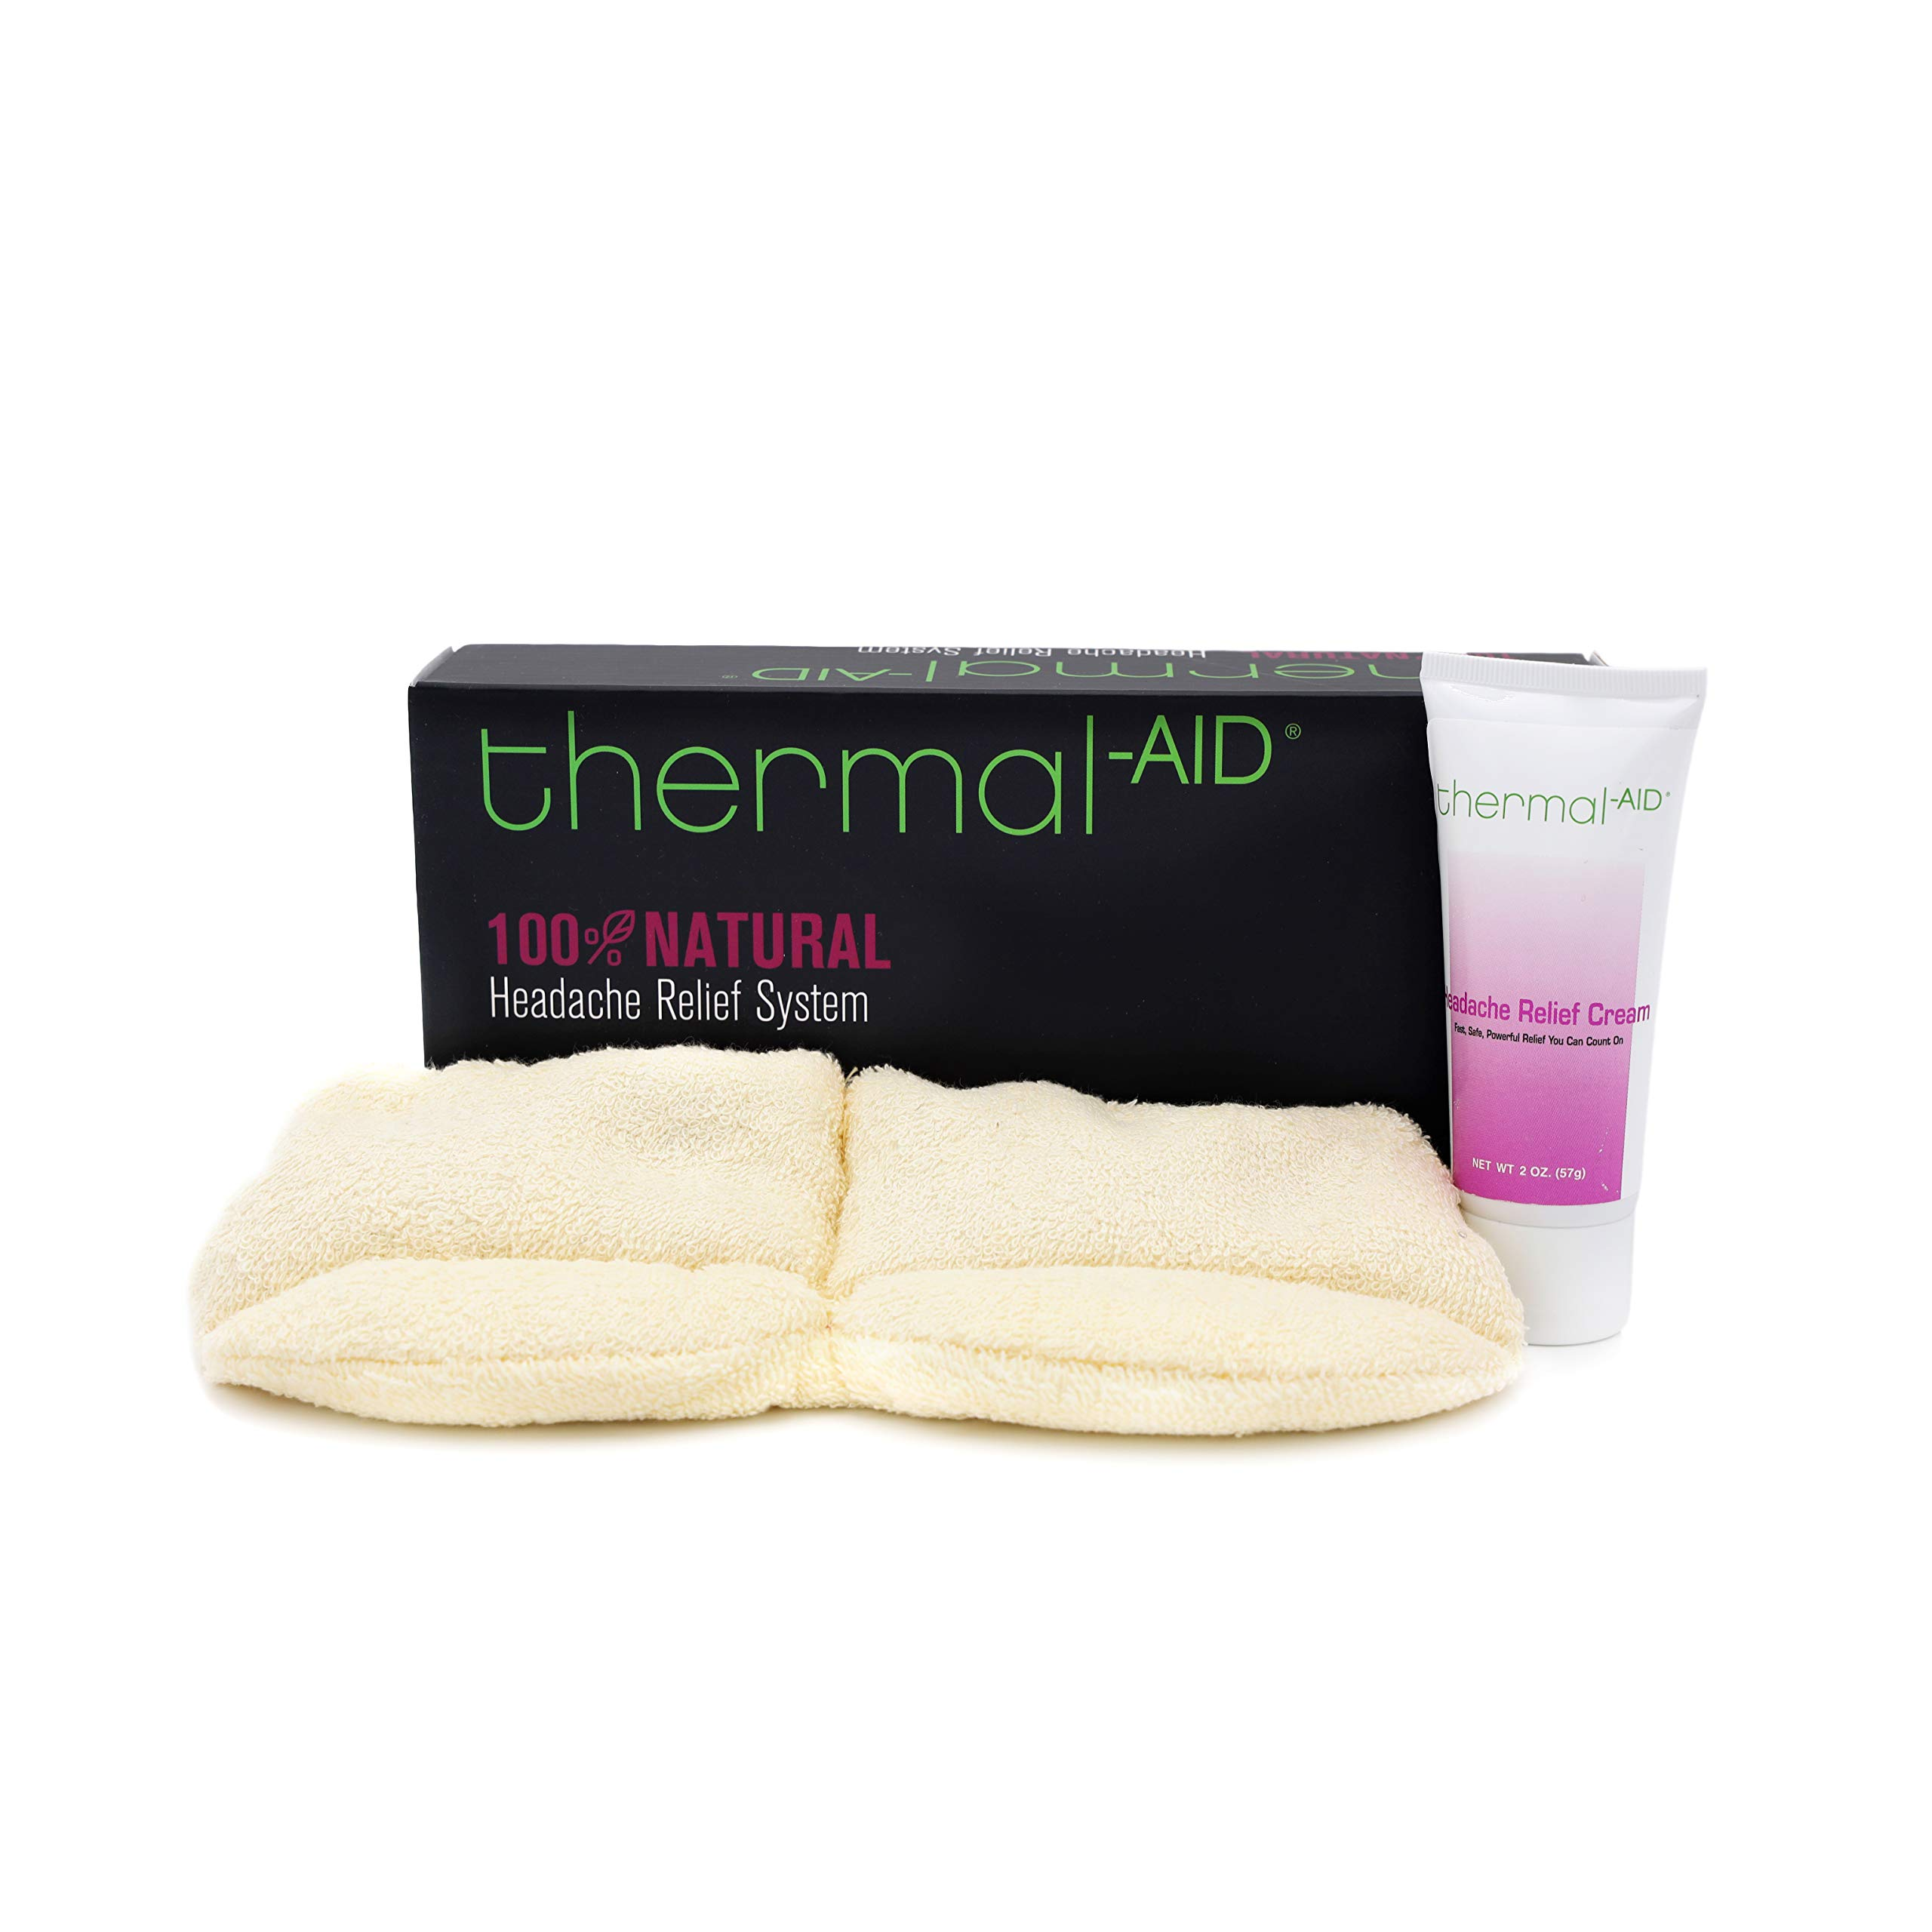 Thermal-Aid — Headache Relief System — Pain Relief Sleep Mask and Analgesic — Great Stress Relief and Anxiety Relief — Designed to Reduce Light Sensitivity for Migraine Relief